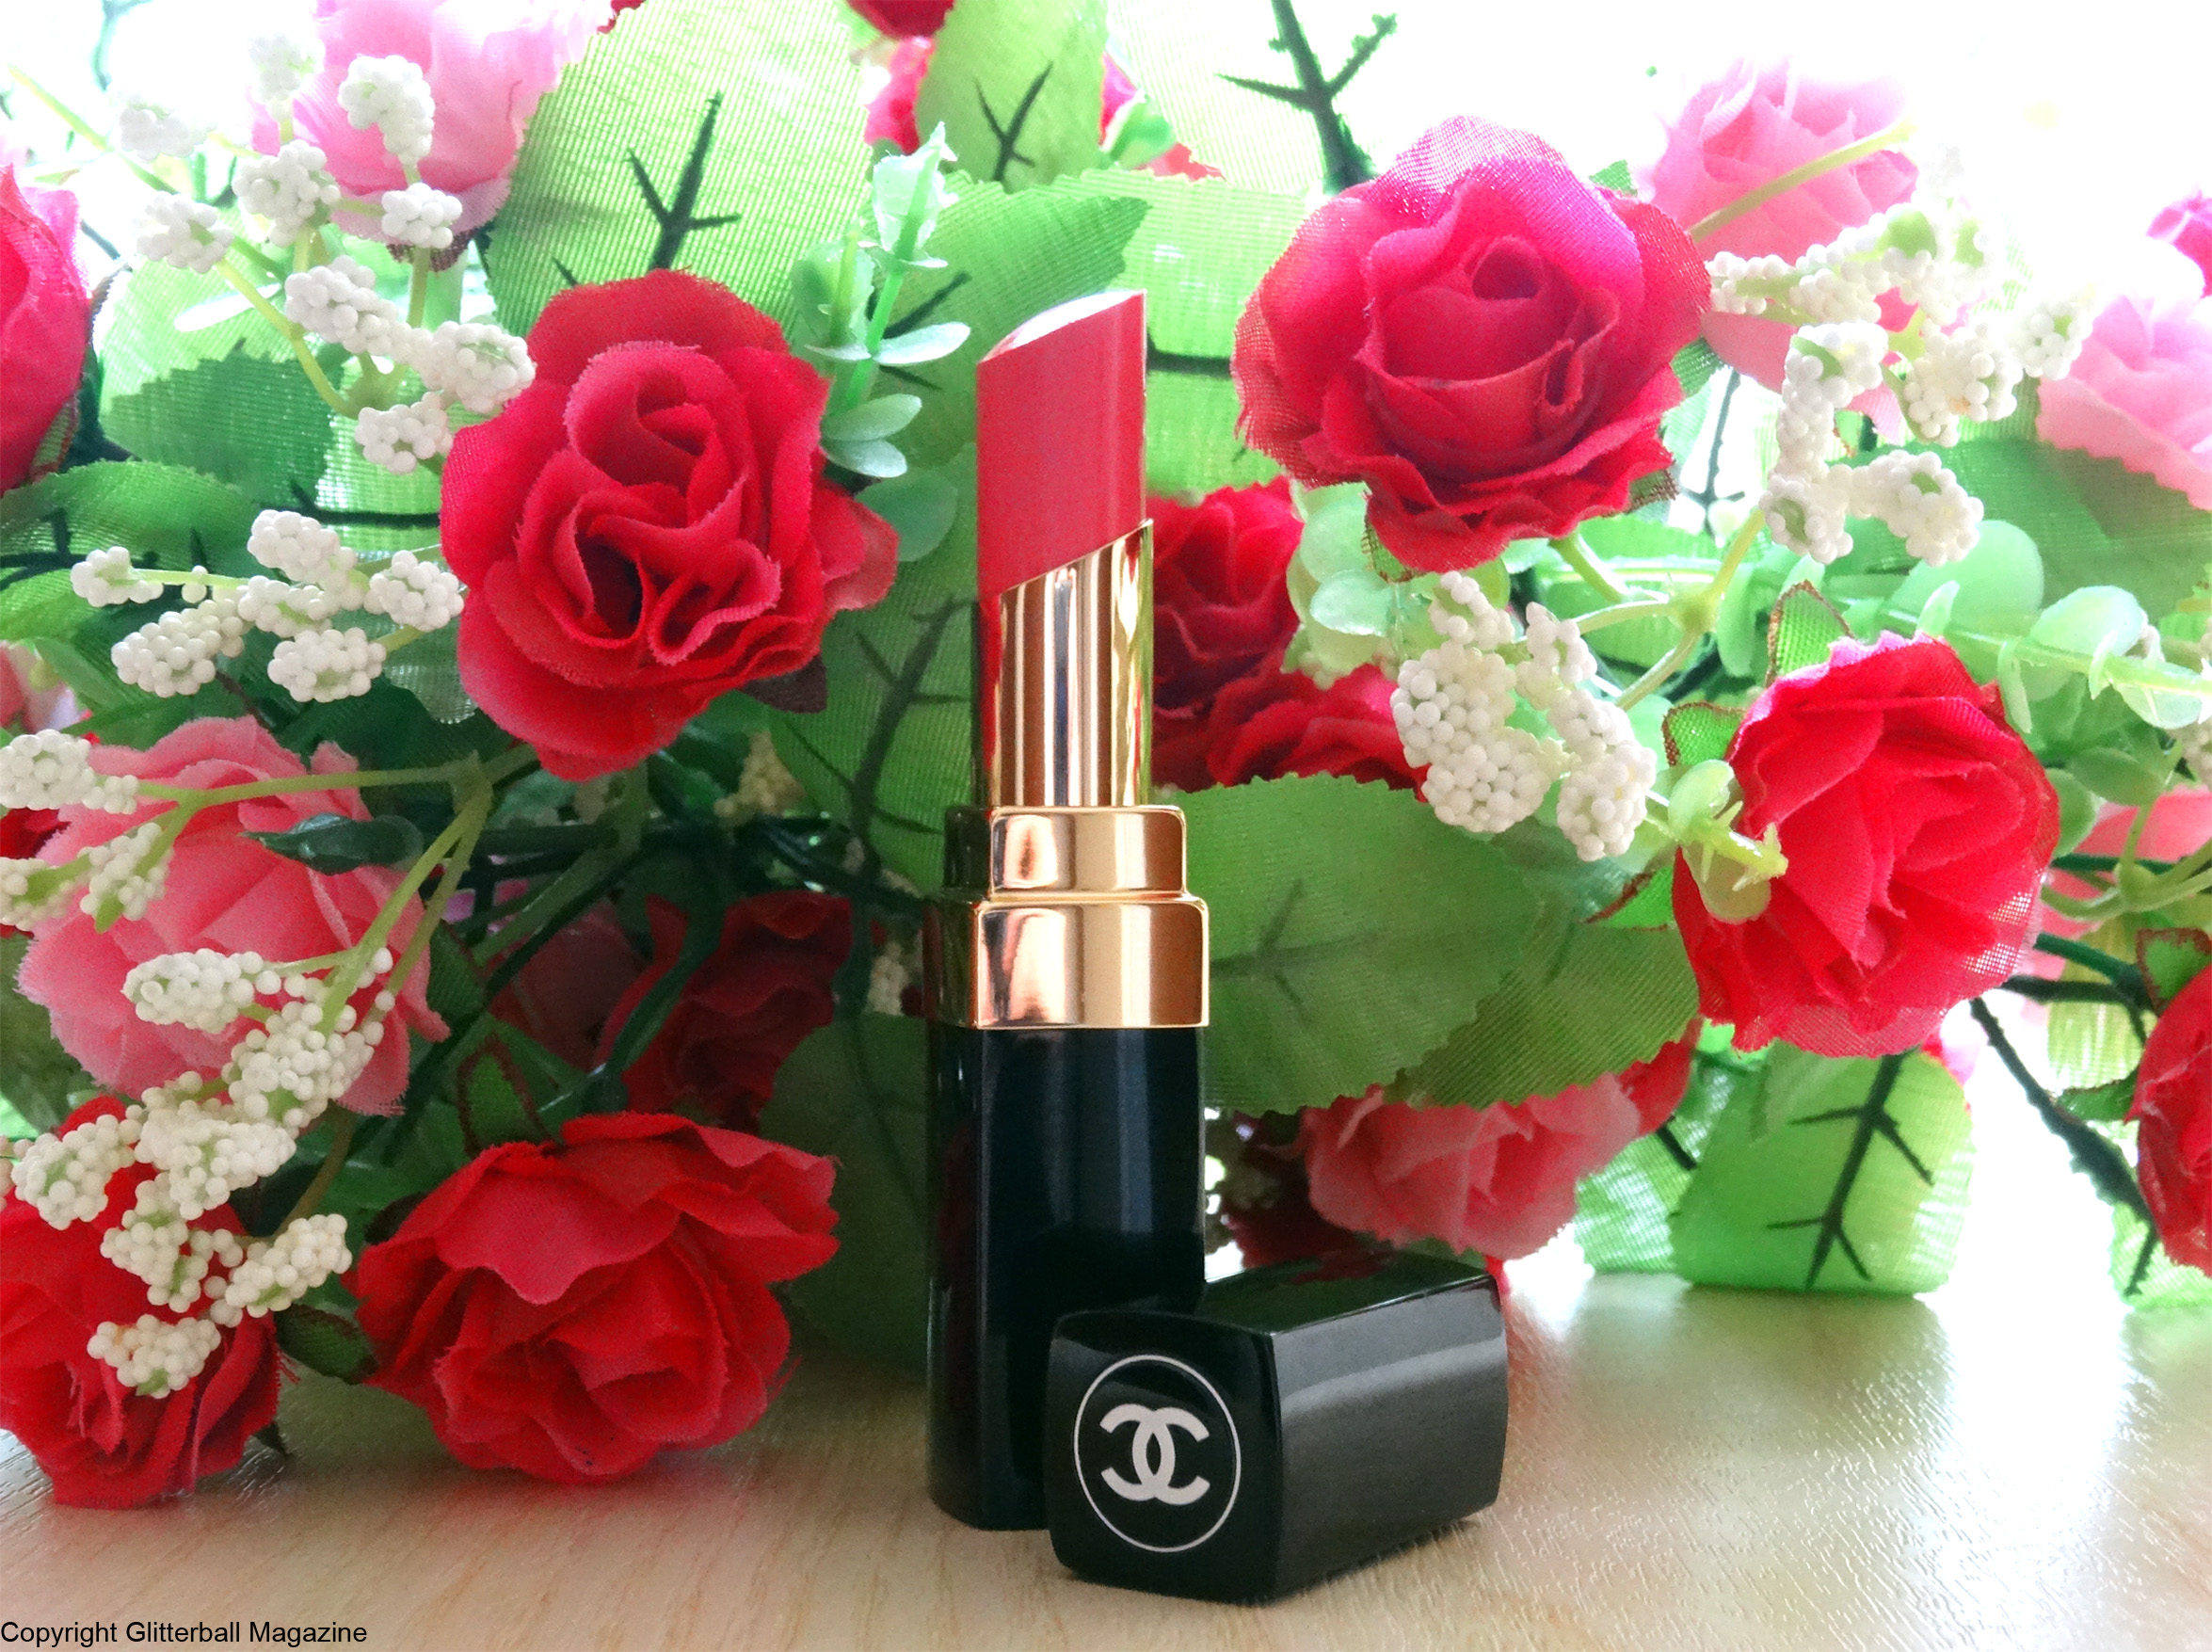 Chanel lipstick with flowers 2